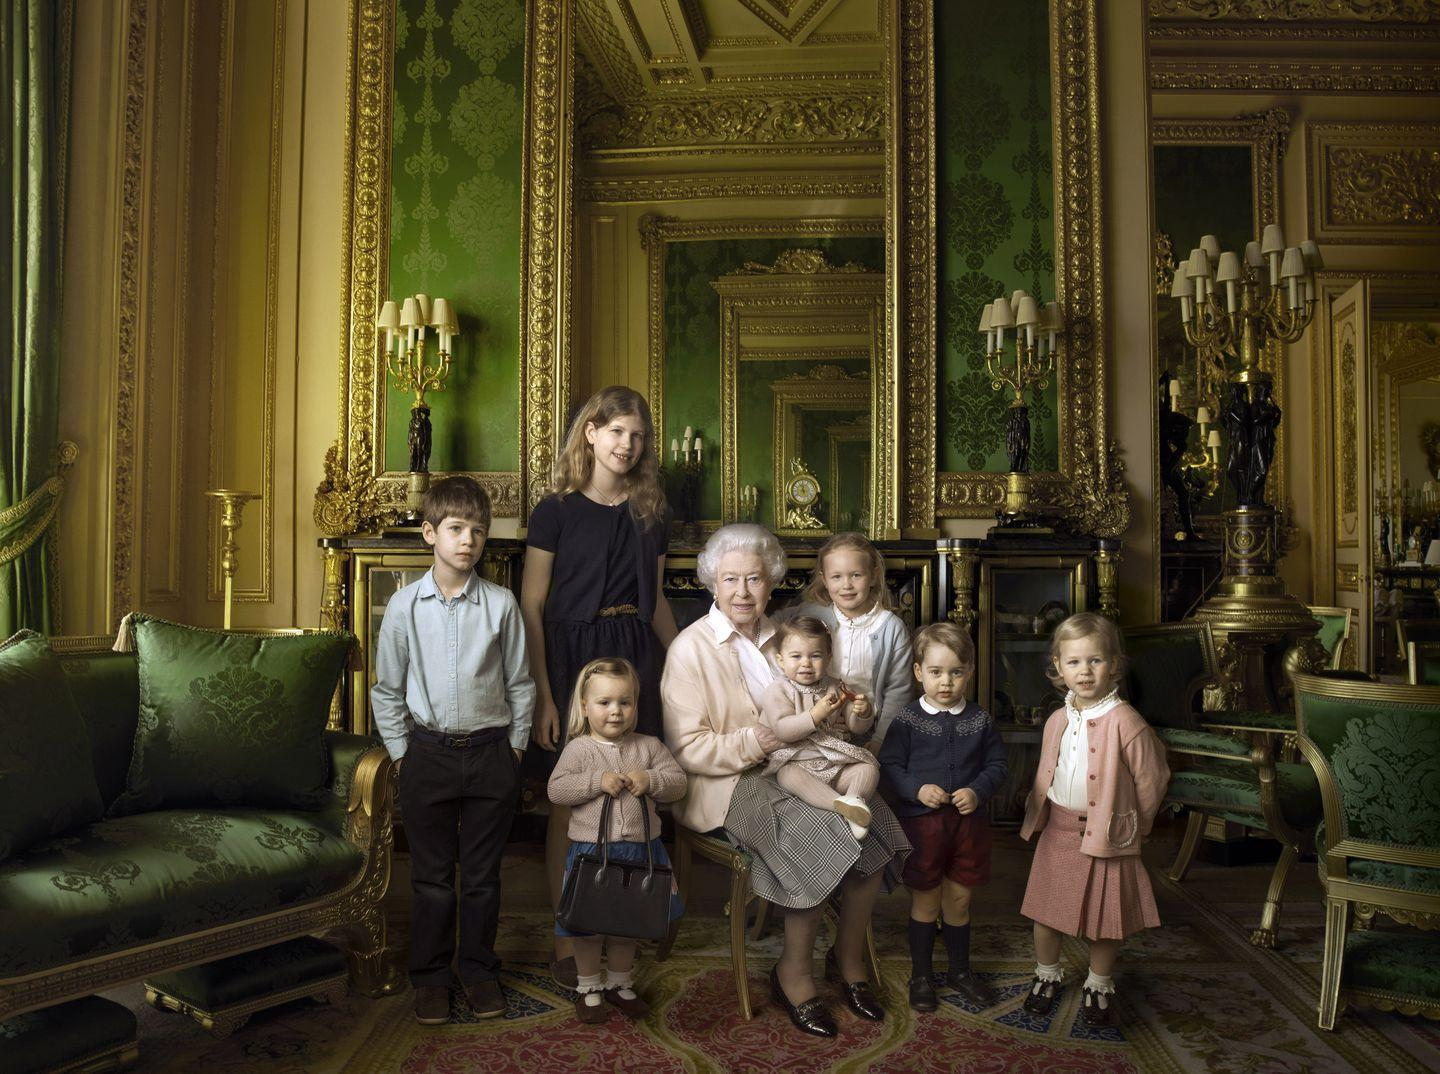 """<p>Princess Charlotte's striking resemblance to her great-grandmother first became apparent in an official portrait of the Queen with her five great-grandchildren and two youngest grandchildren, <a href=""""https://www.townandcountrymag.com/society/a5897/queen-elizabeth-annie-leibovitz-90th-birthday-portraits/"""" target=""""_blank"""">taken in honor of Her Majesty's 90th birthday</a>.</p>"""